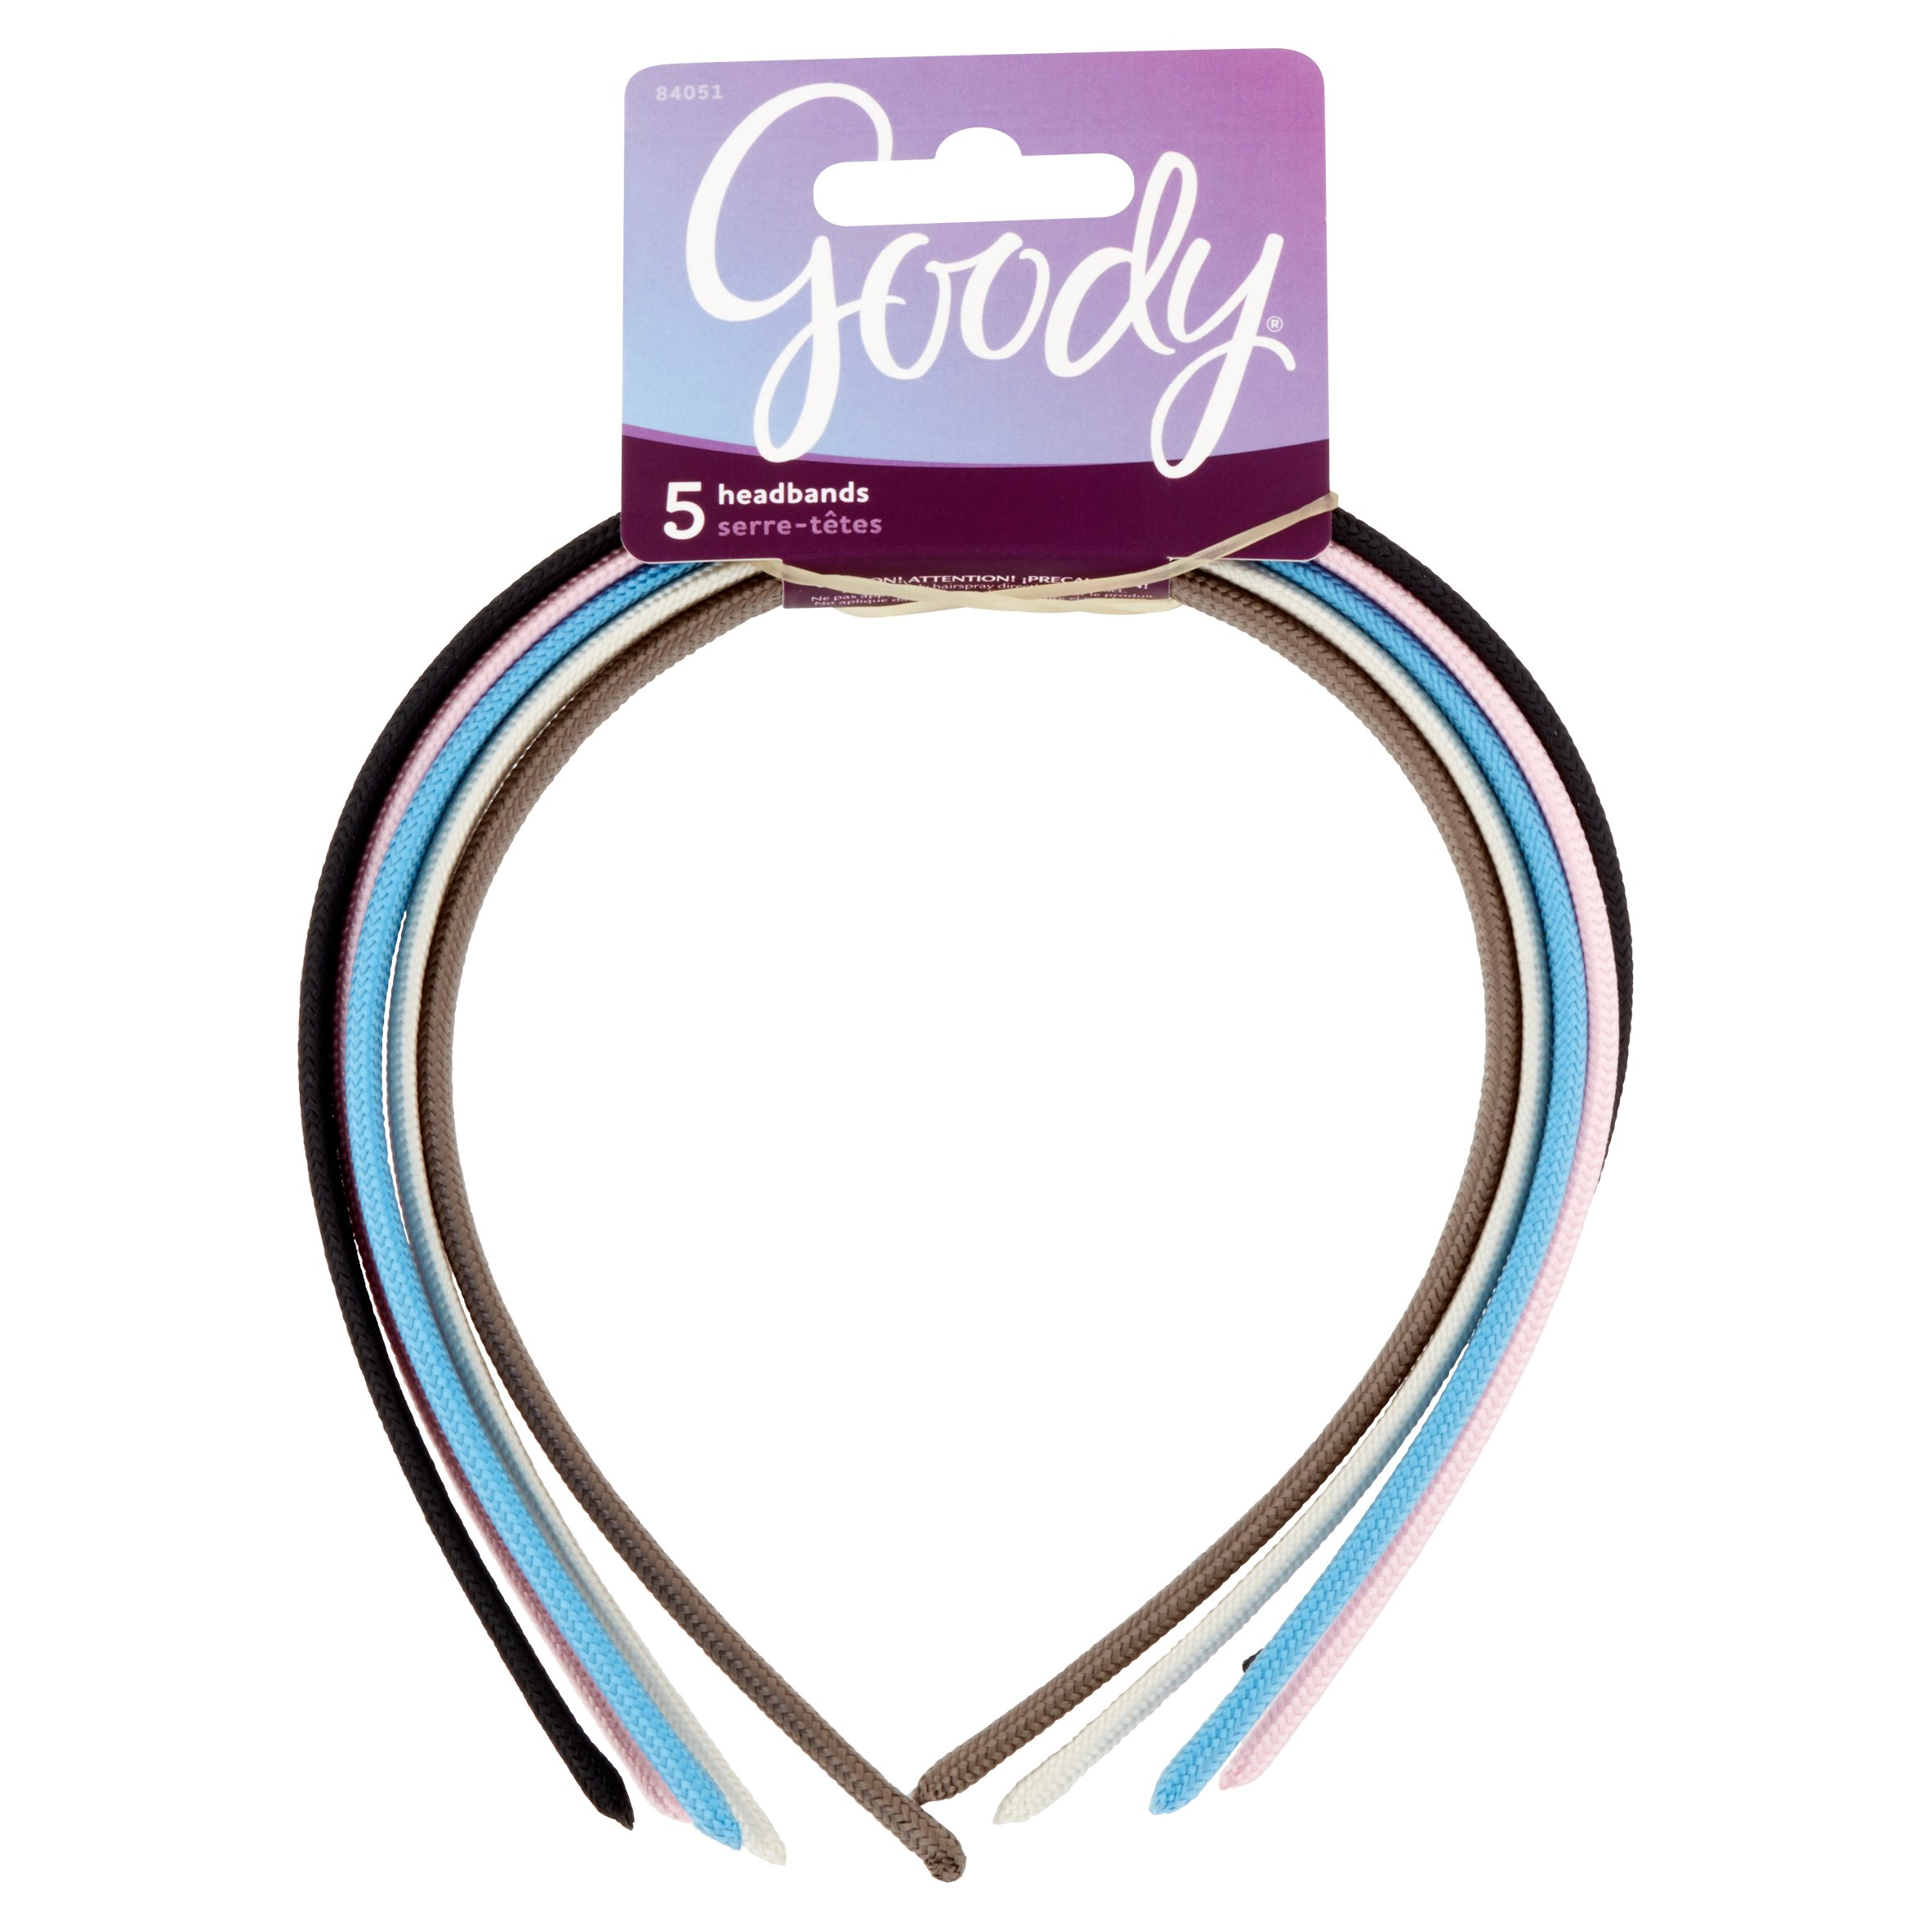 Goody Headbands, 5 count